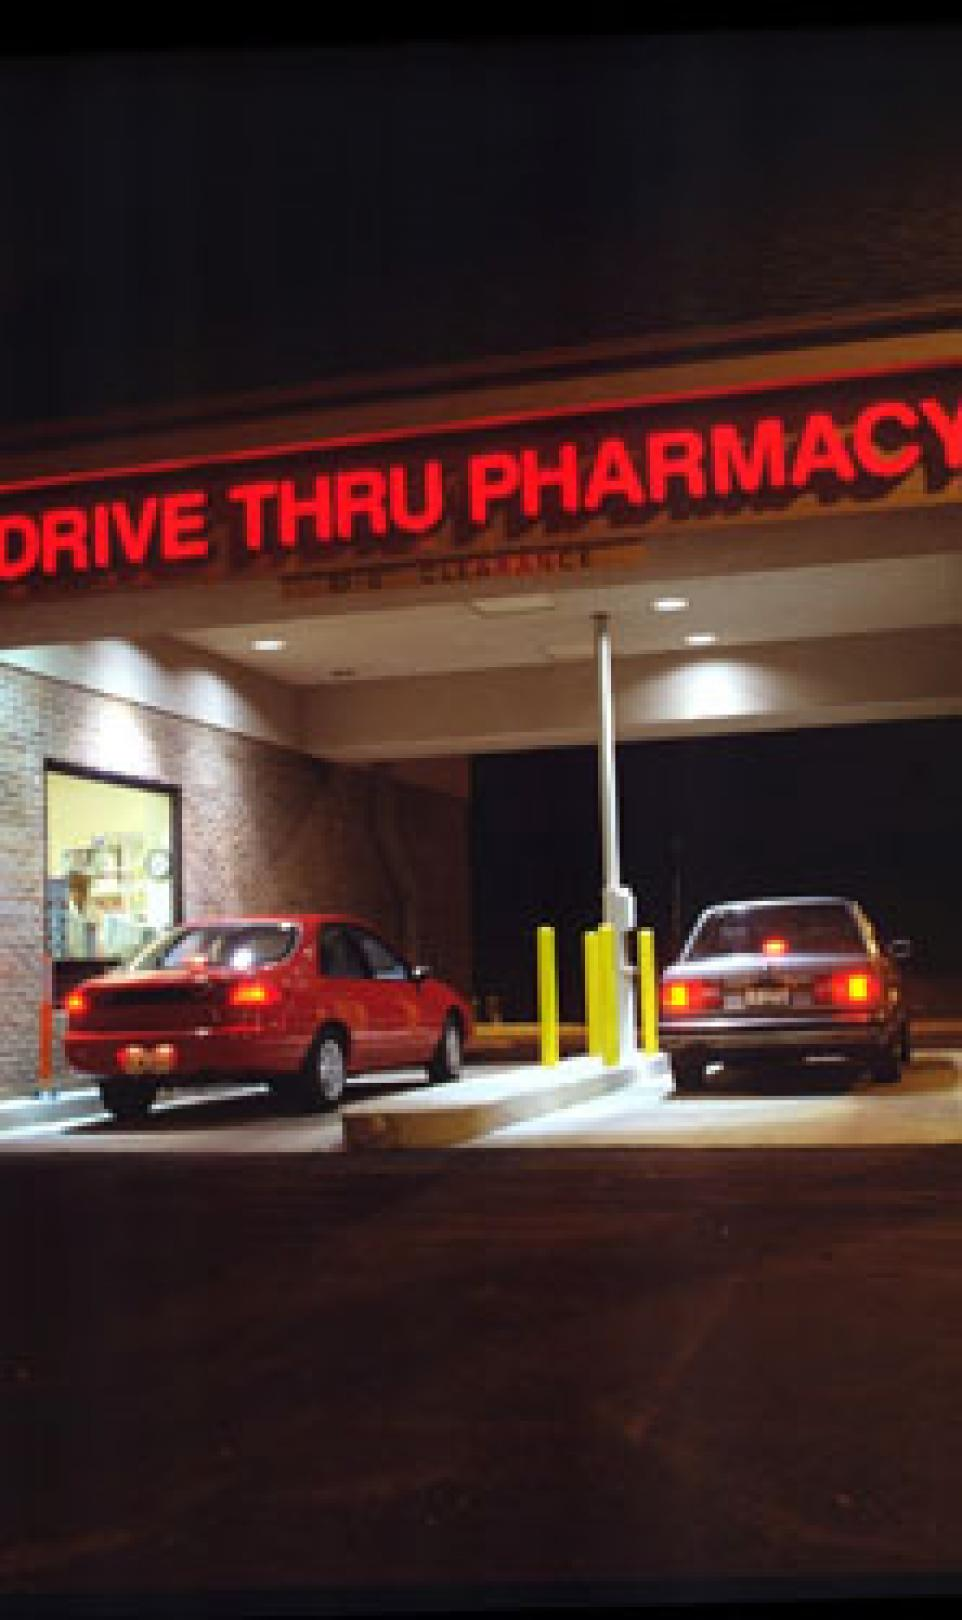 Outside view of a Walgreens drugstore with a drive-thru pharmacy